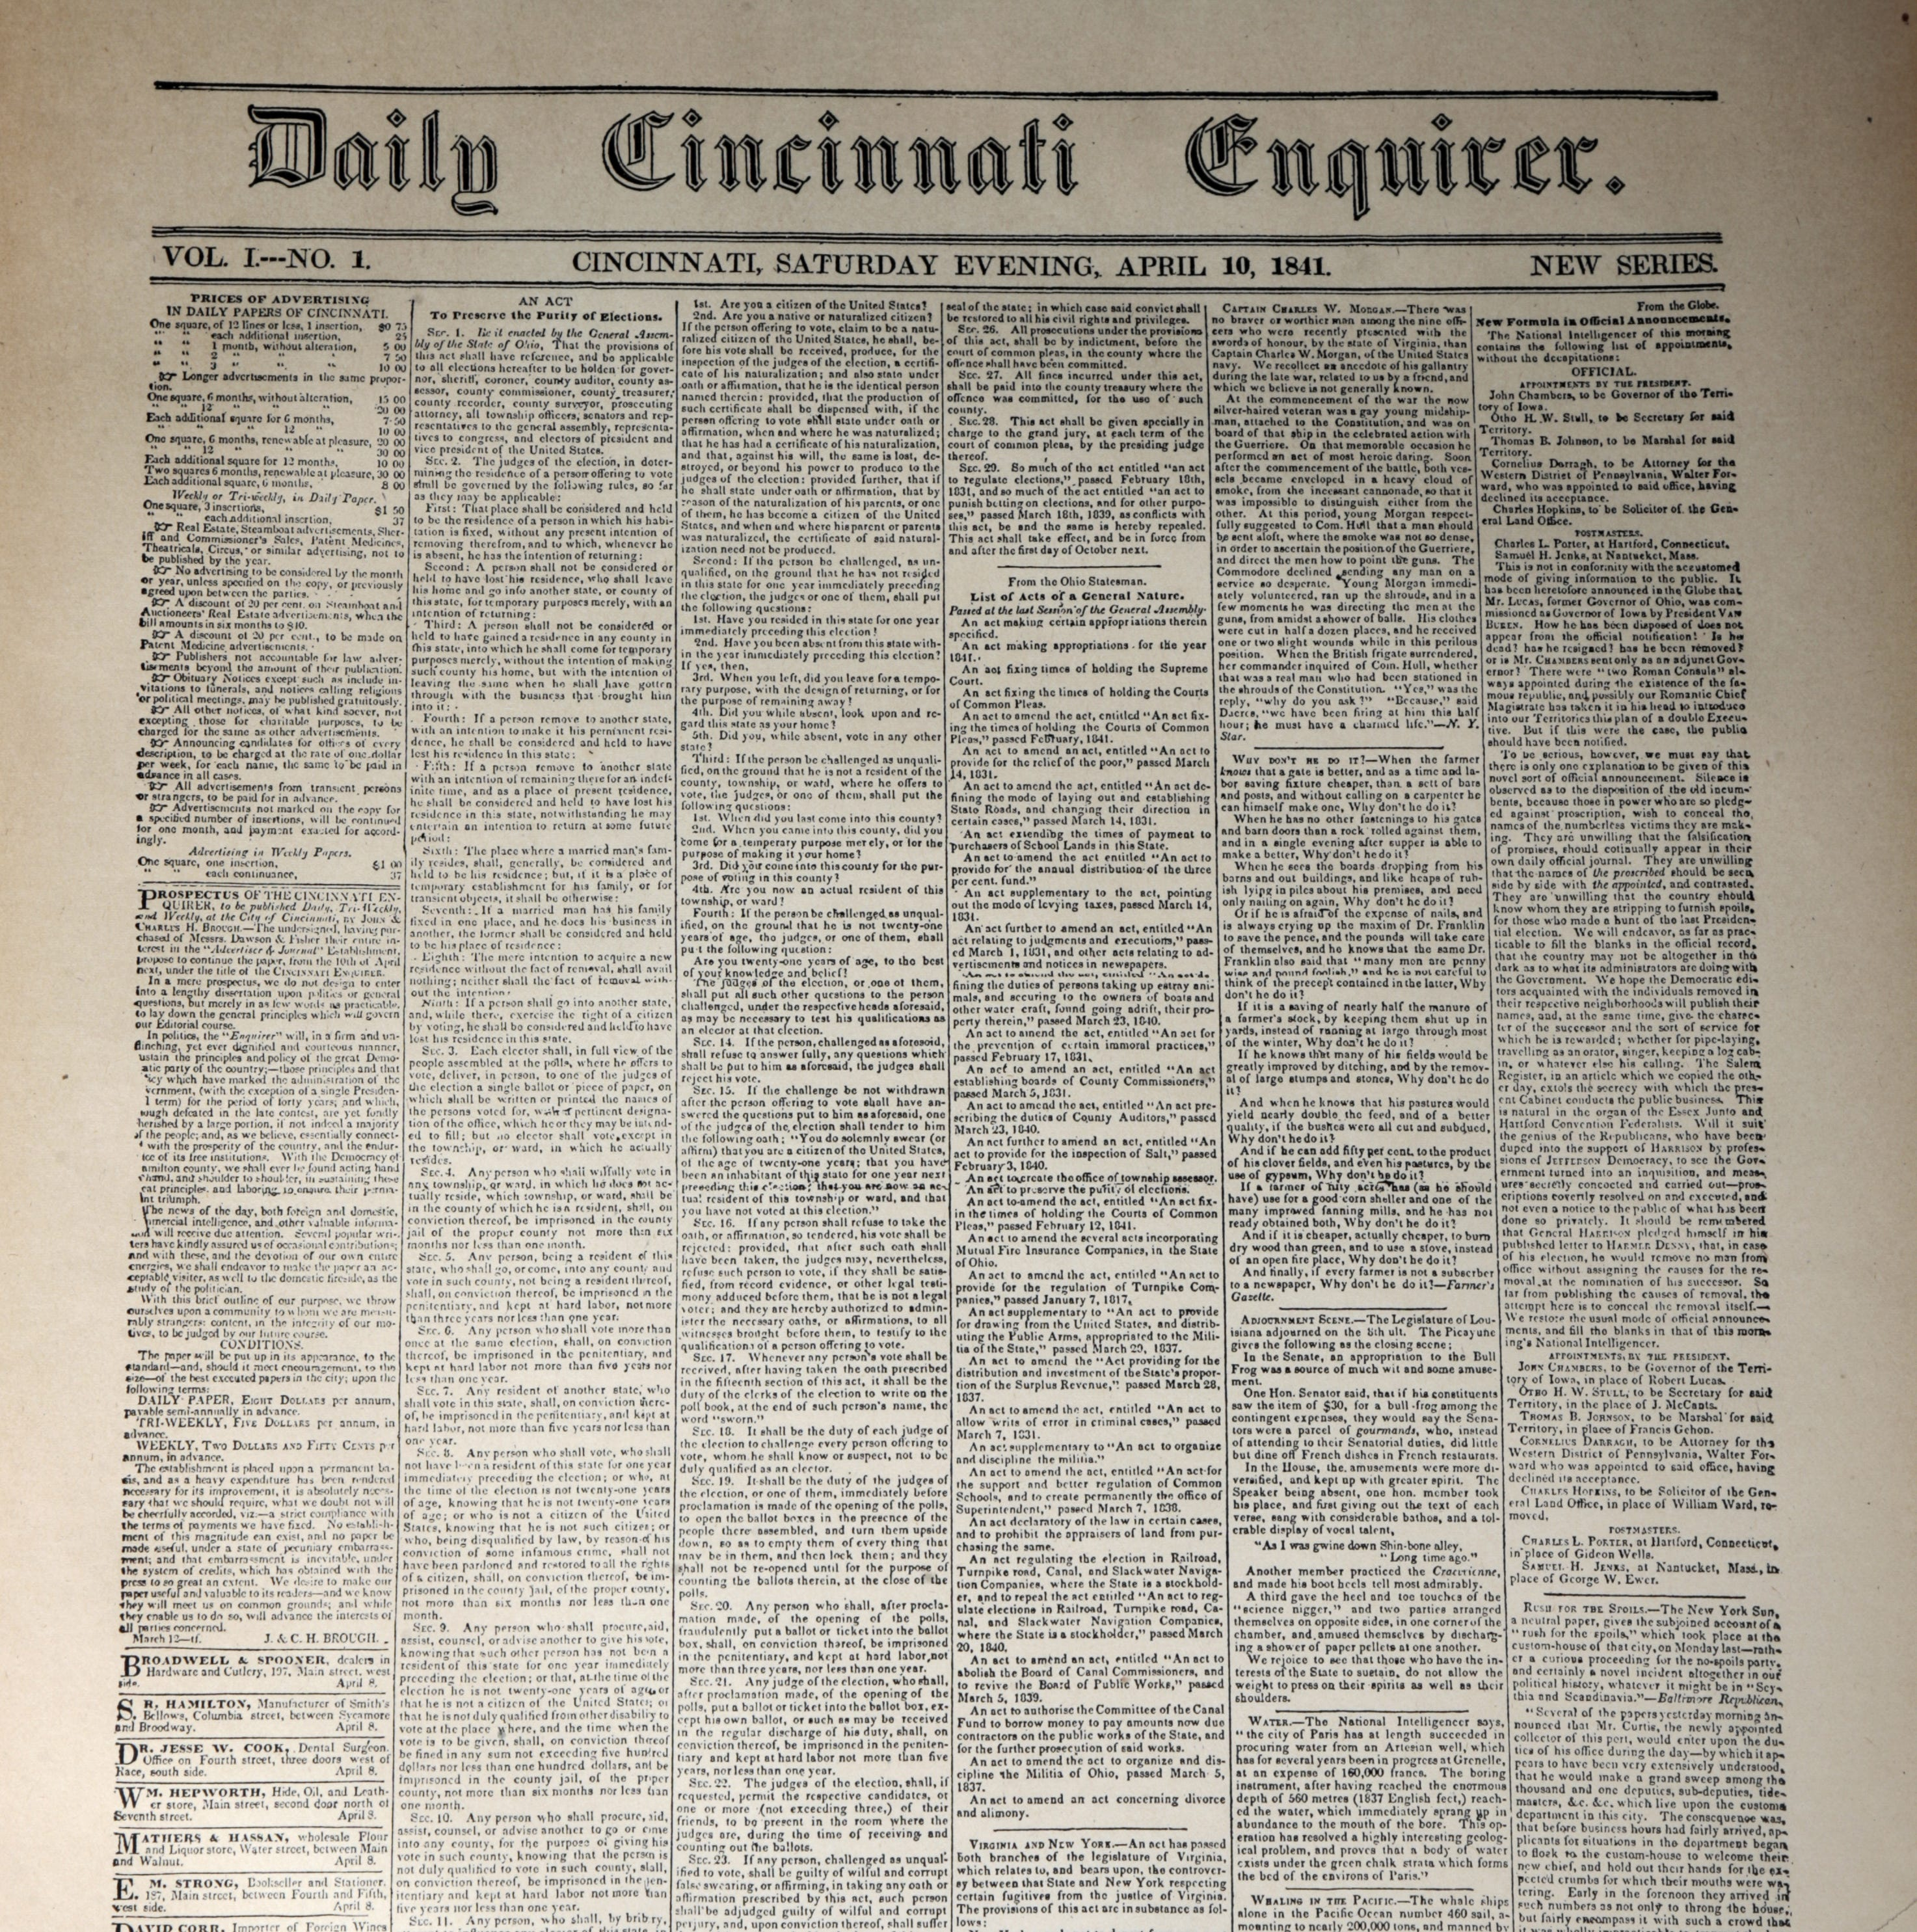 Our History: Enquirer has adapted over its long history since 1841